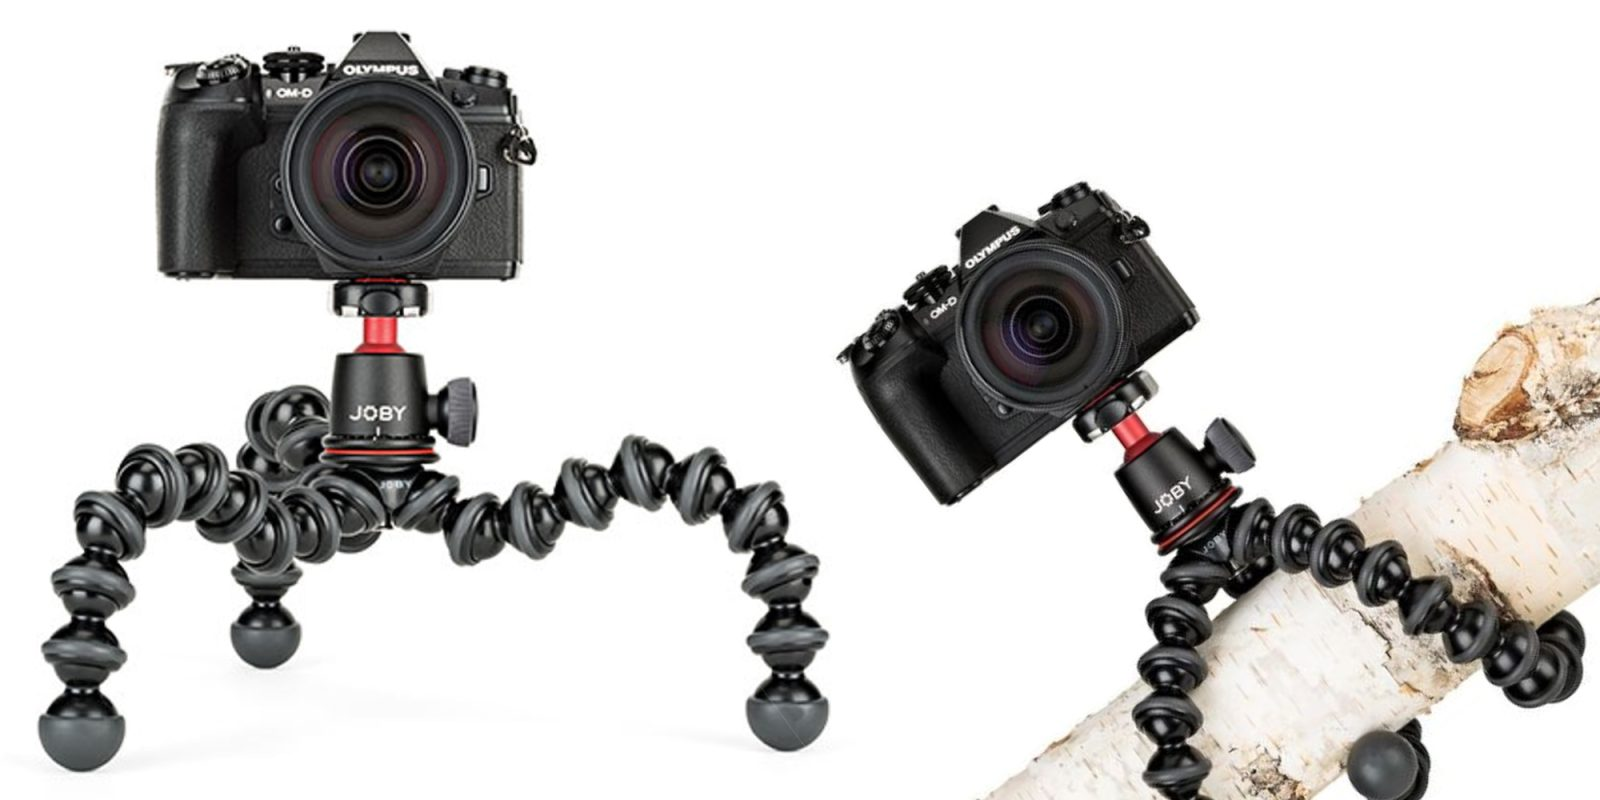 Save 25% on JOBY's GorillaPod 3K Stand and add it to your photography setup at a new low of $30